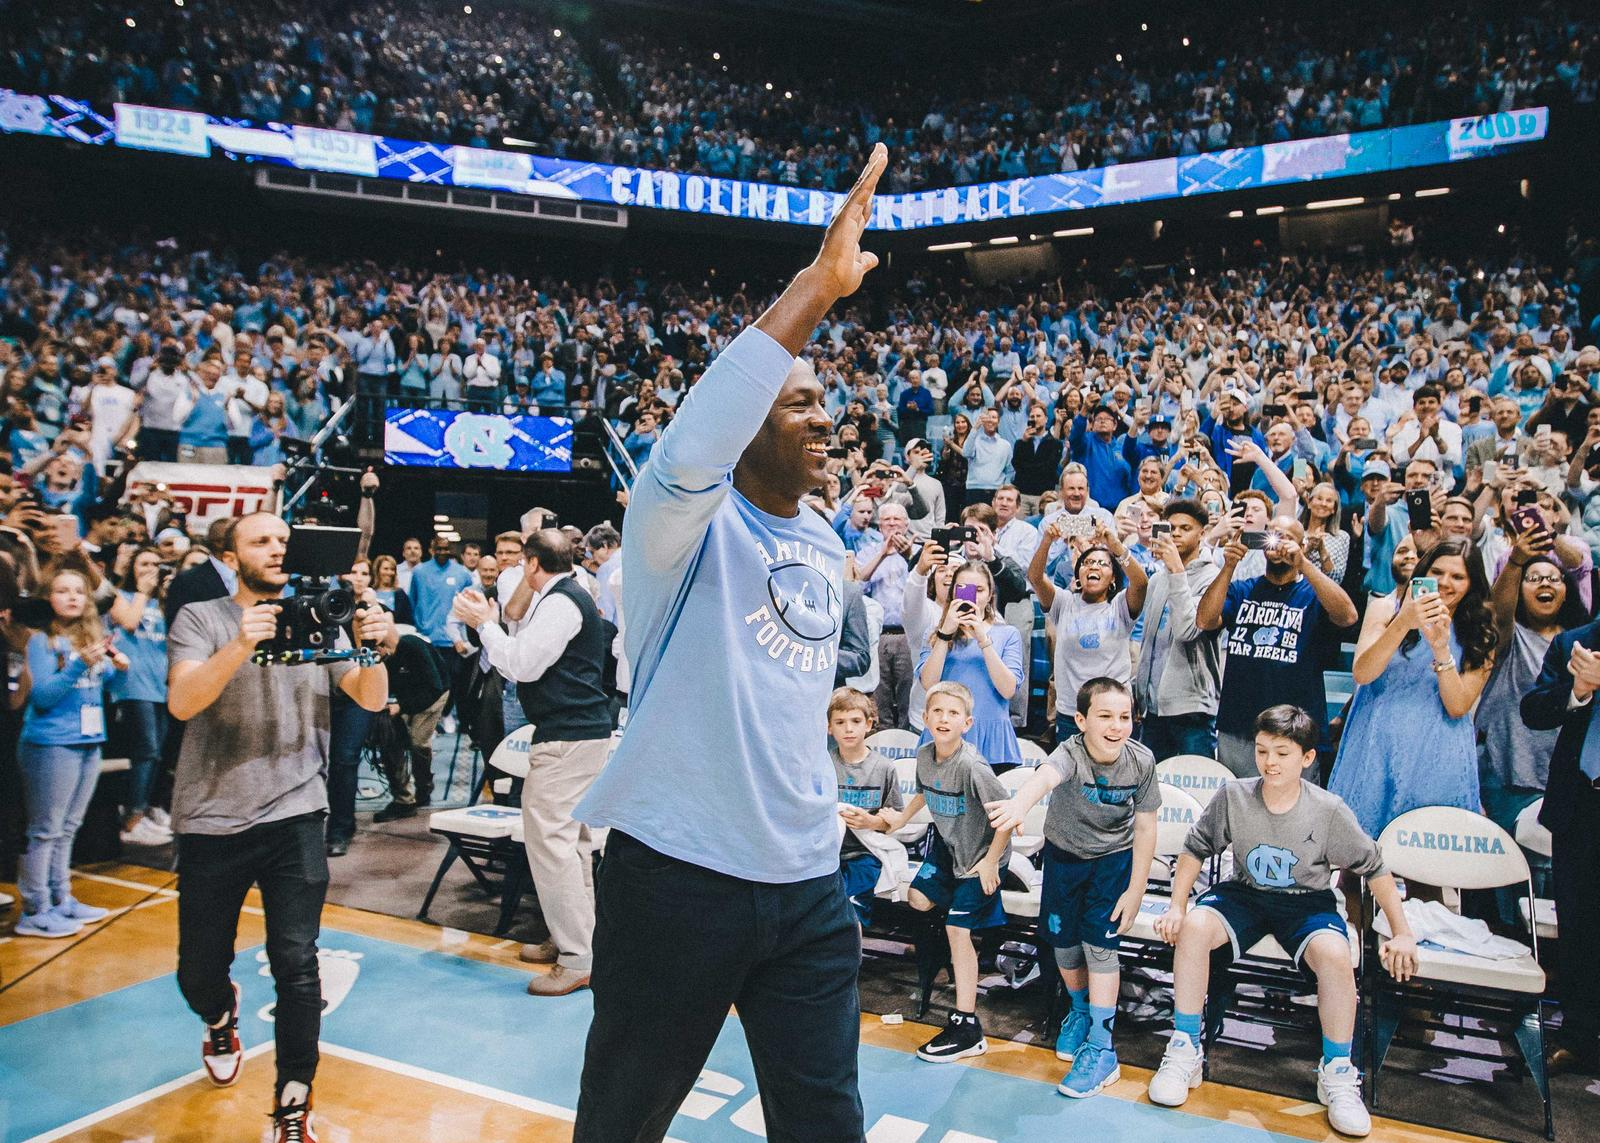 Jordan Brand Expands Partnership with UNC to Include Football 3